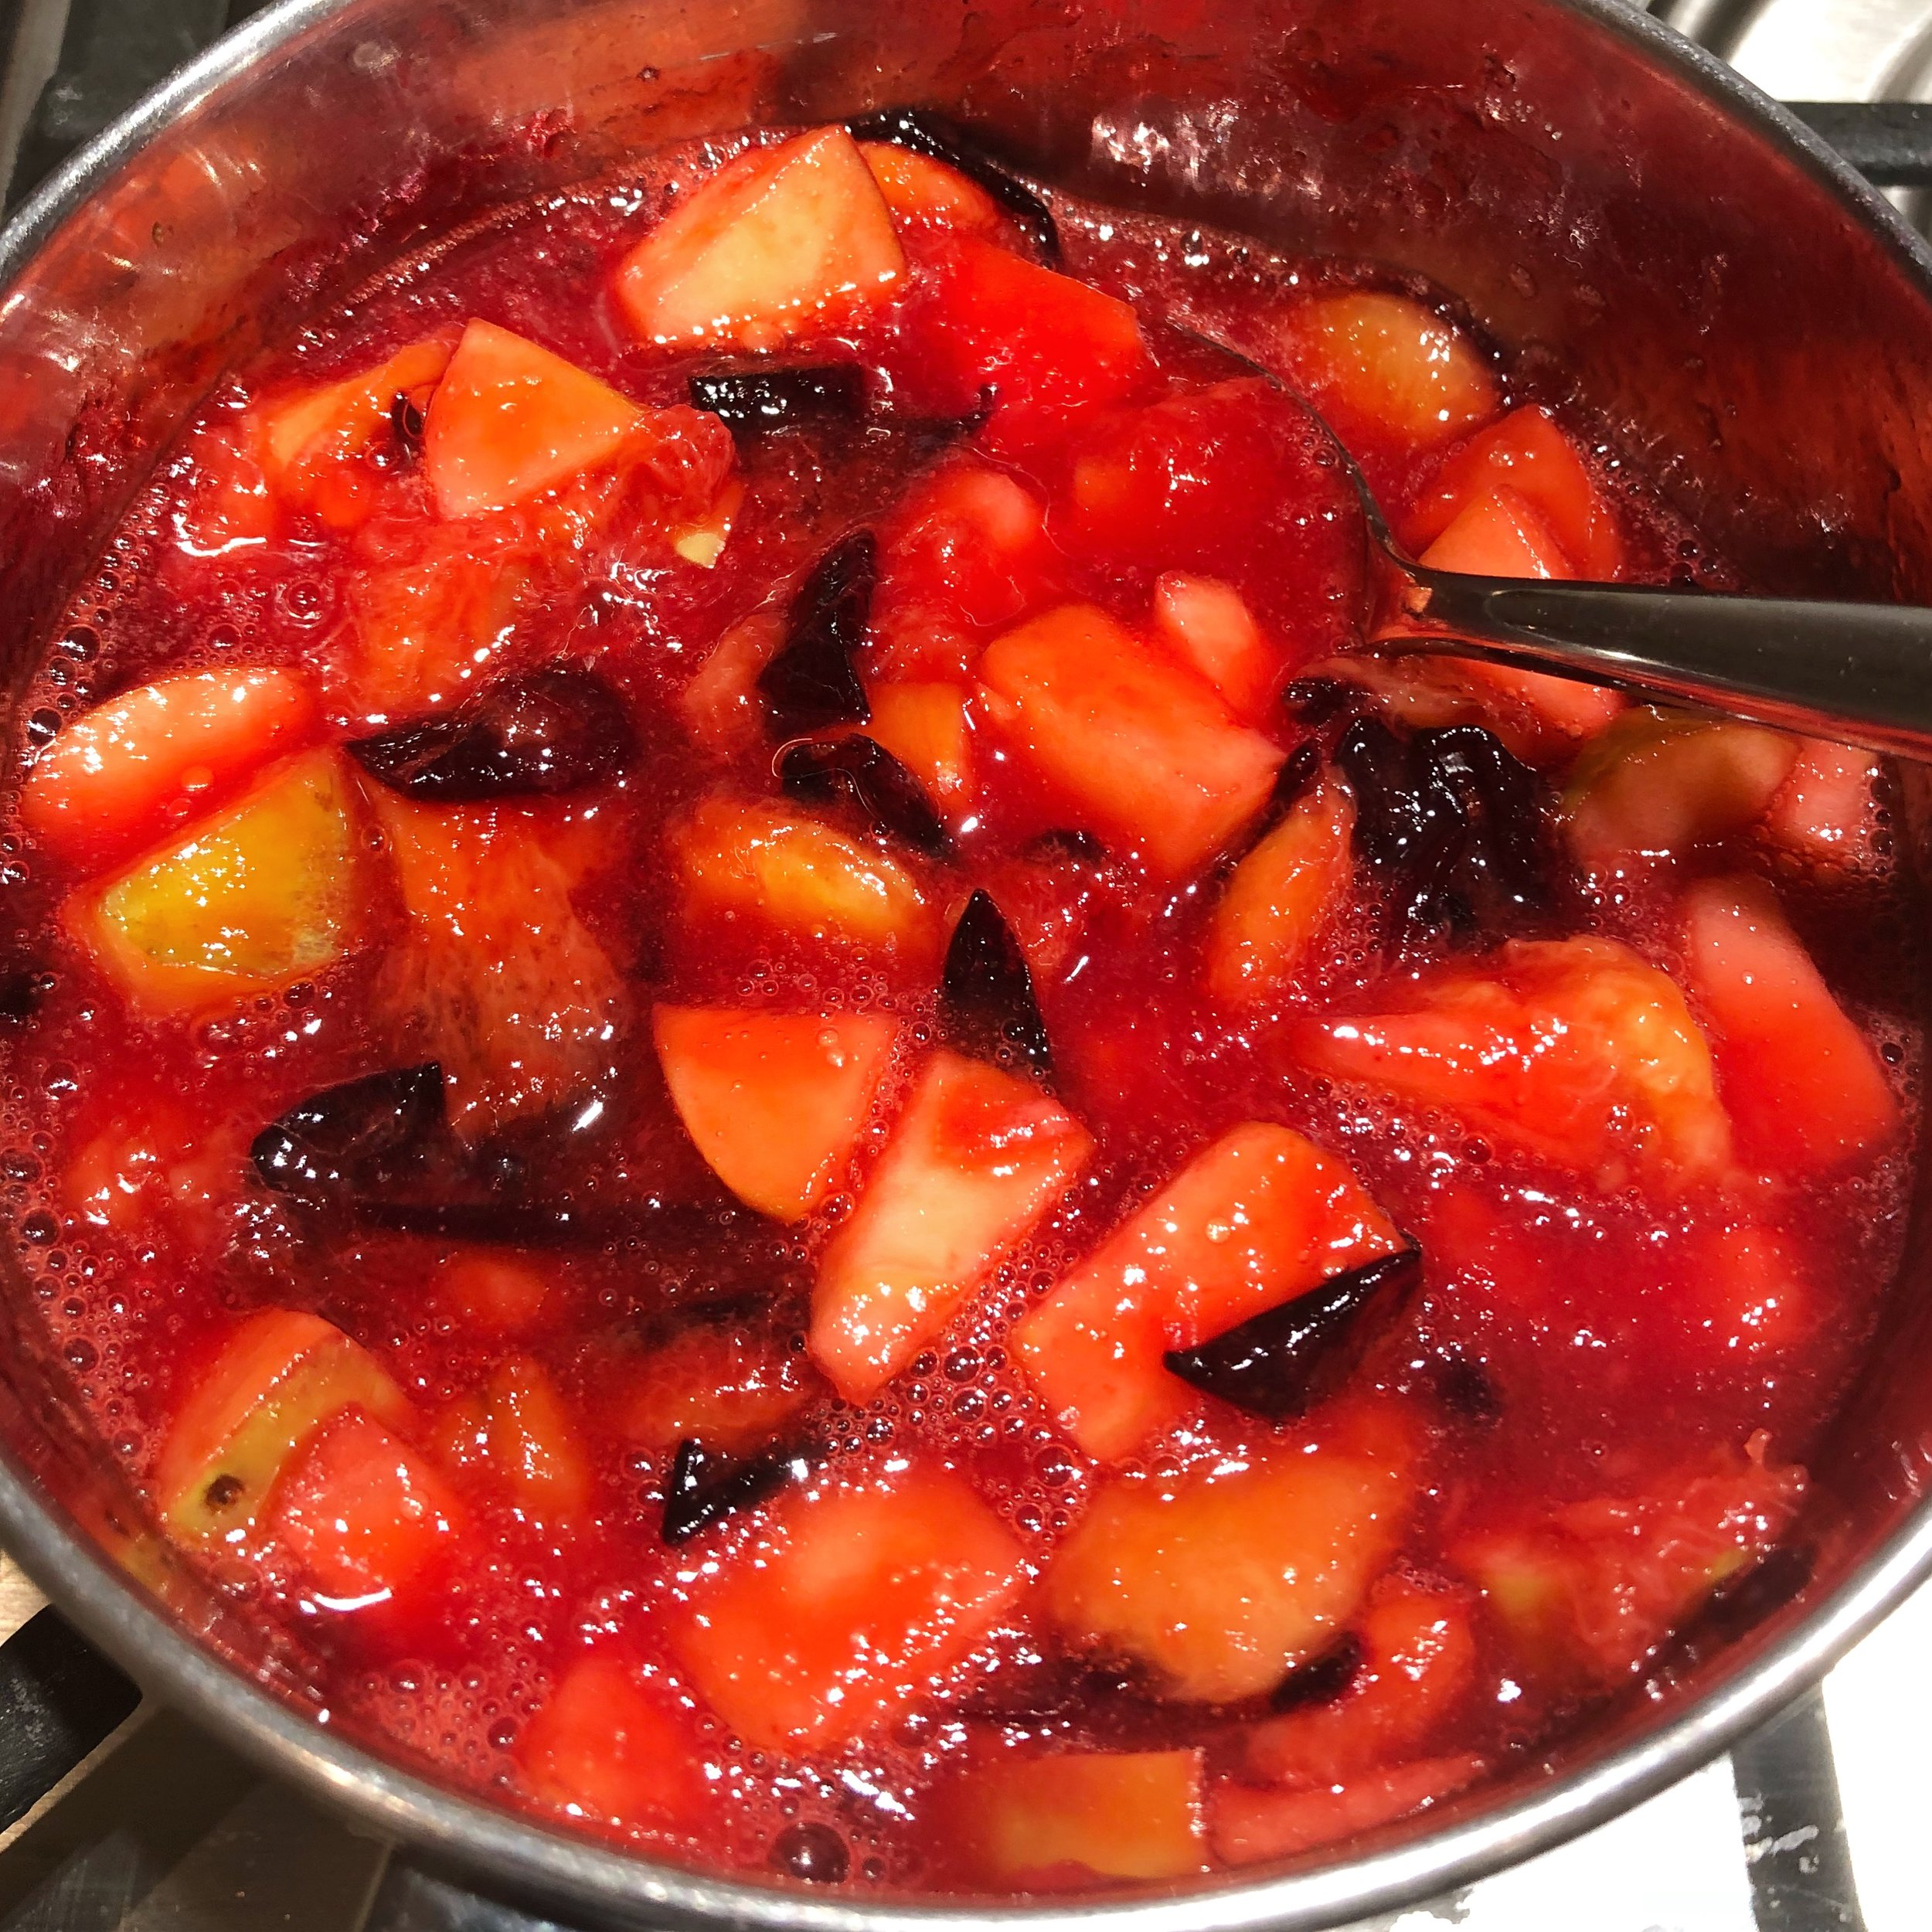 The plums starting to break down and become syrupy. I added some chopped apples to the plums in this chia seed jam